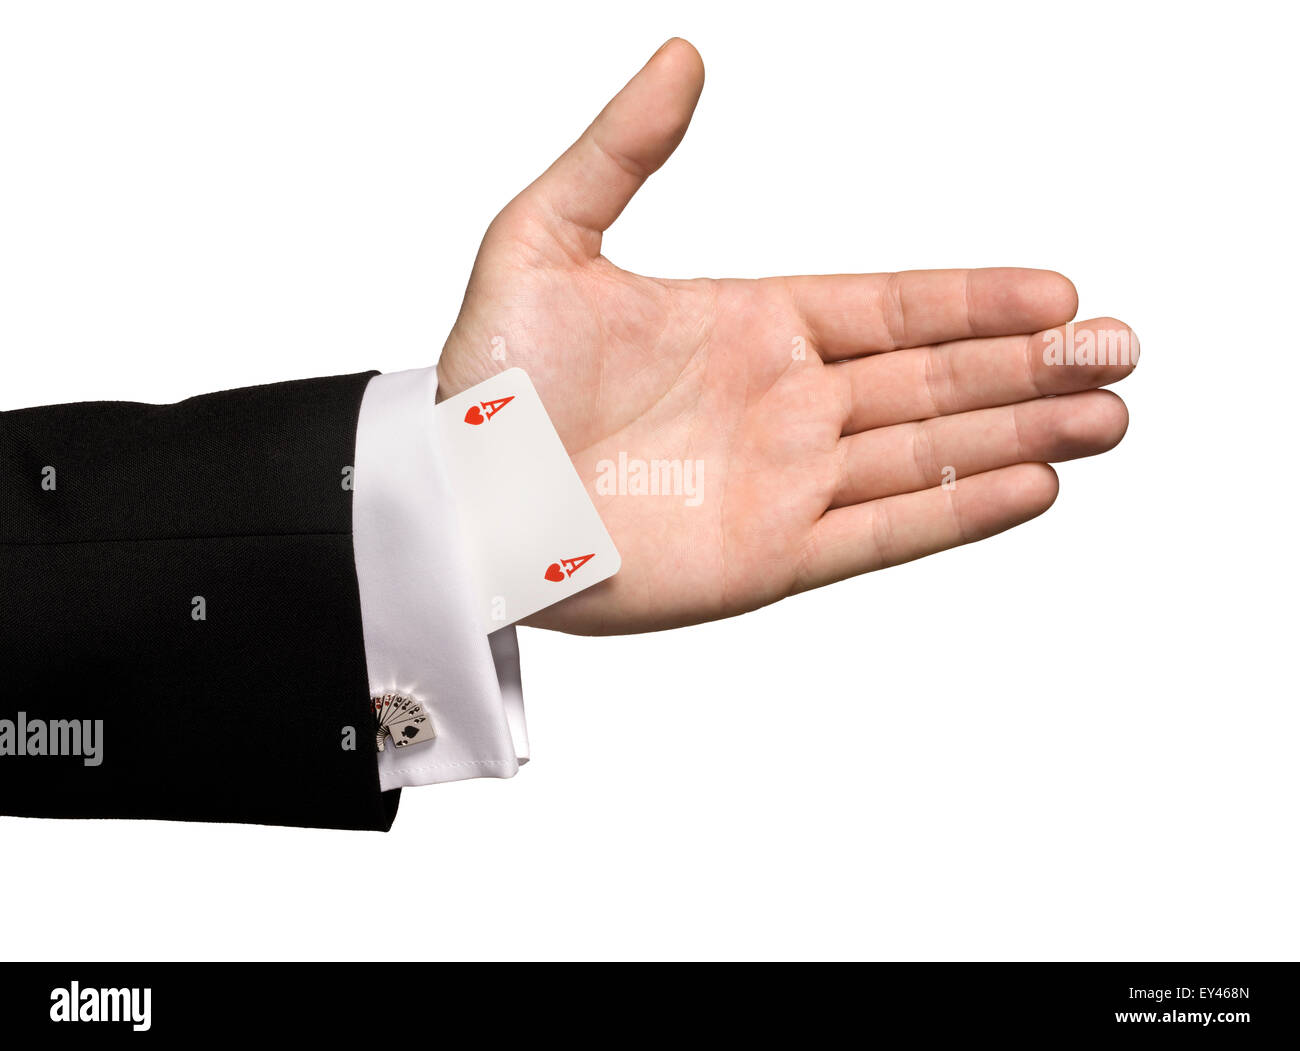 A magician with an ace up his sleeve - Stock Image